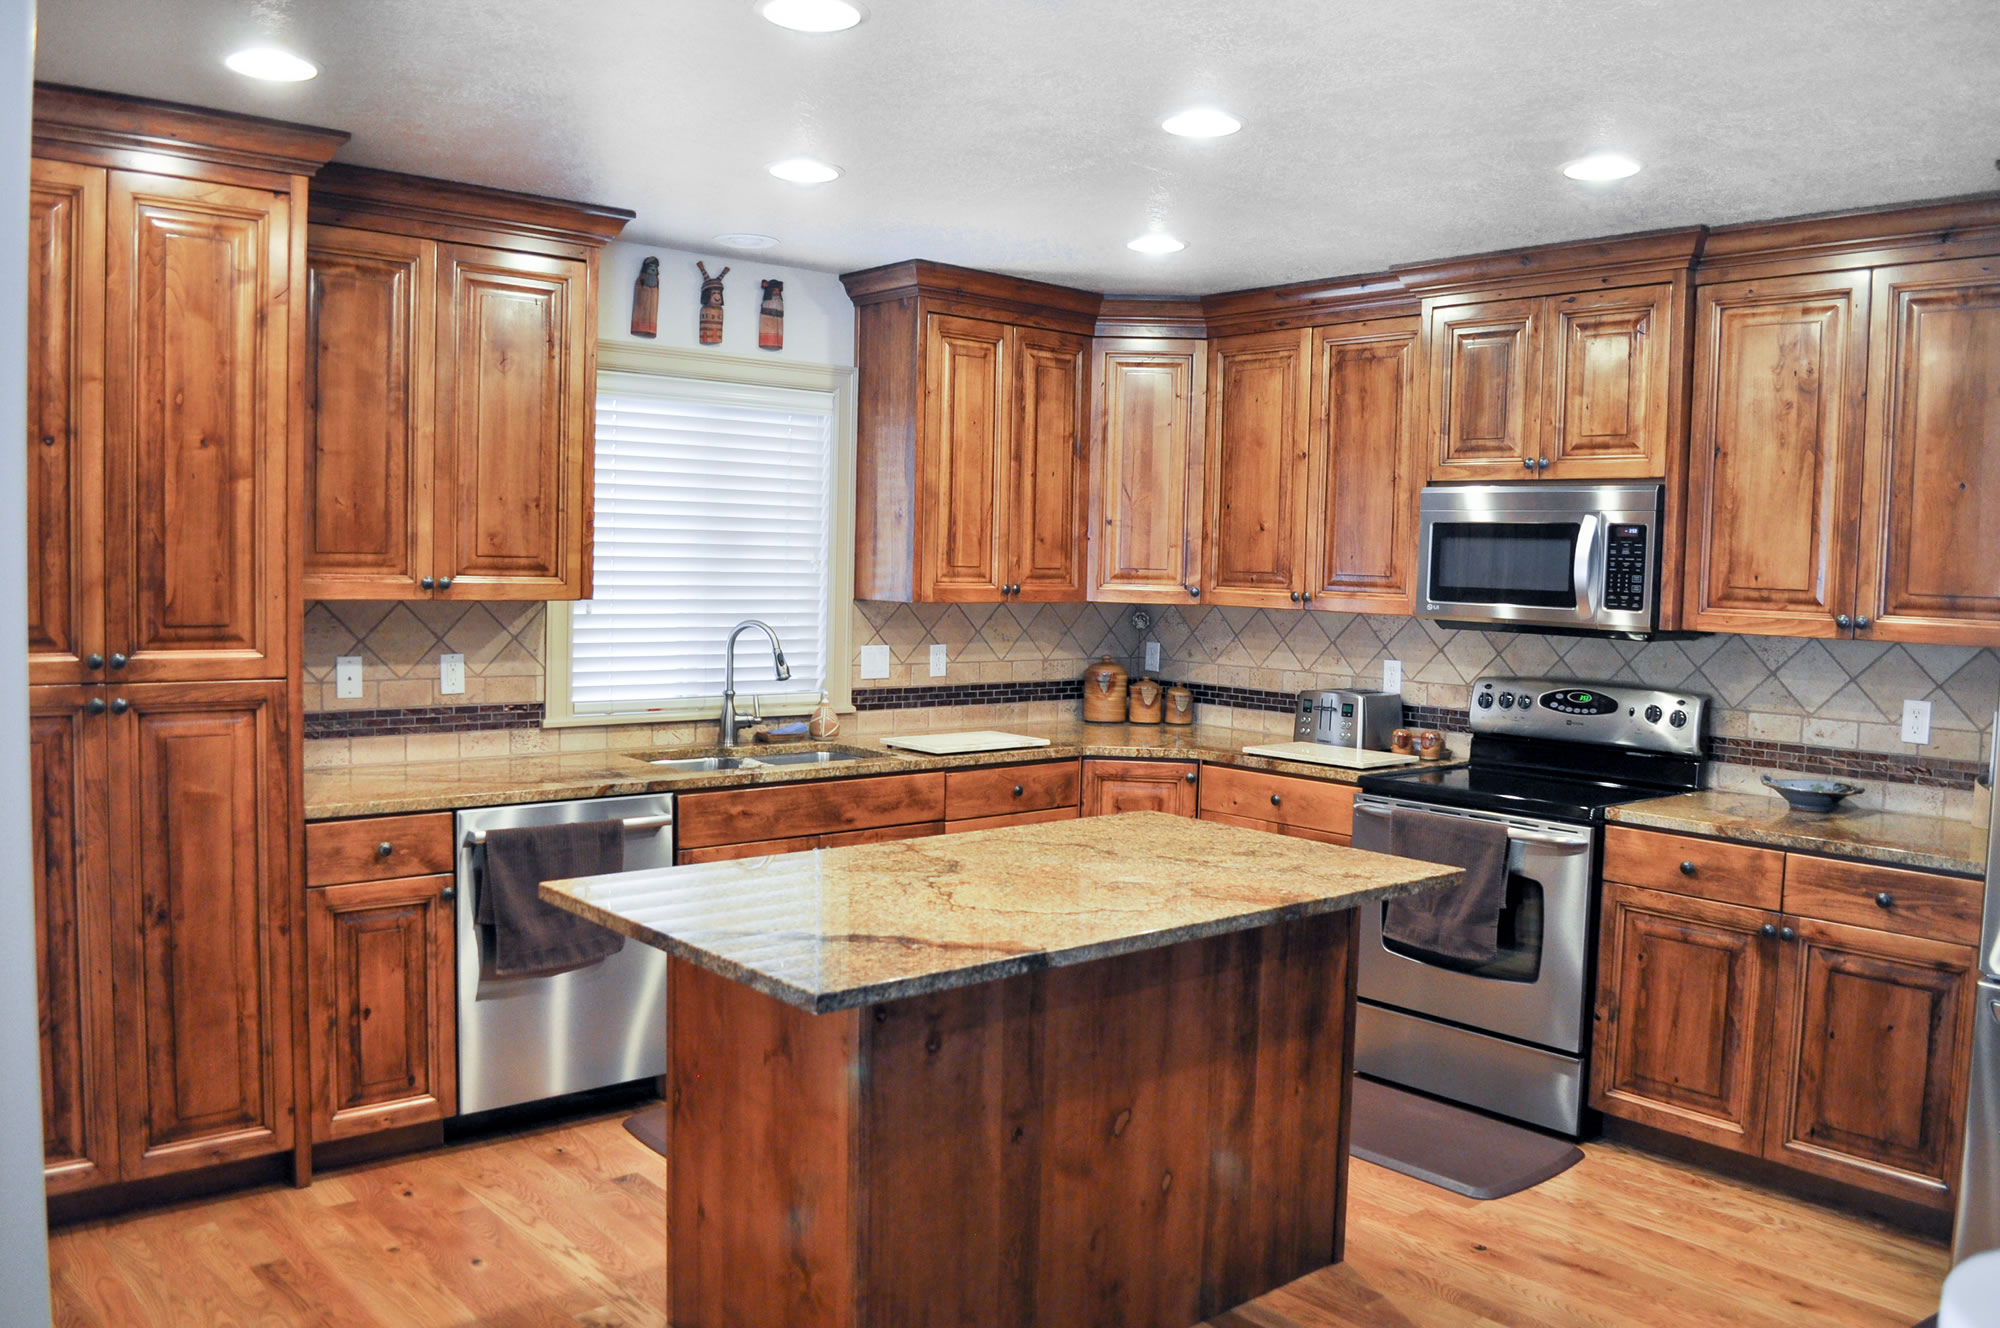 WoodWorks Refurbishing  Cabinet refinishing and giving